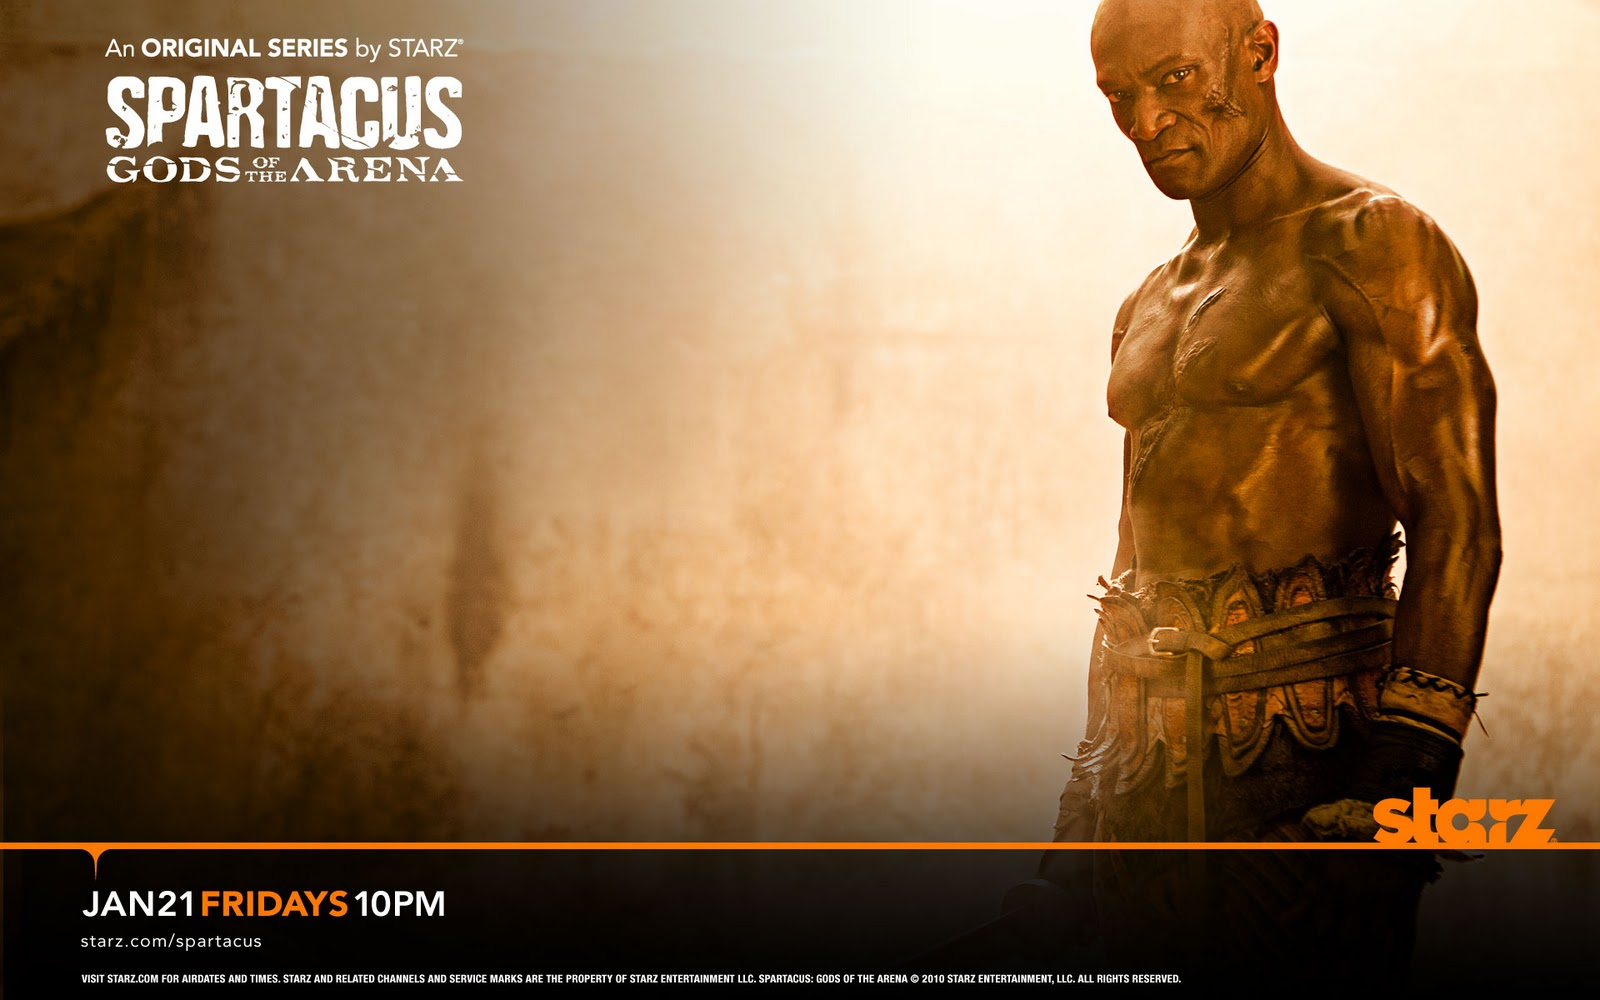 Swords And Sandals Spartacus Gods Of The Arena